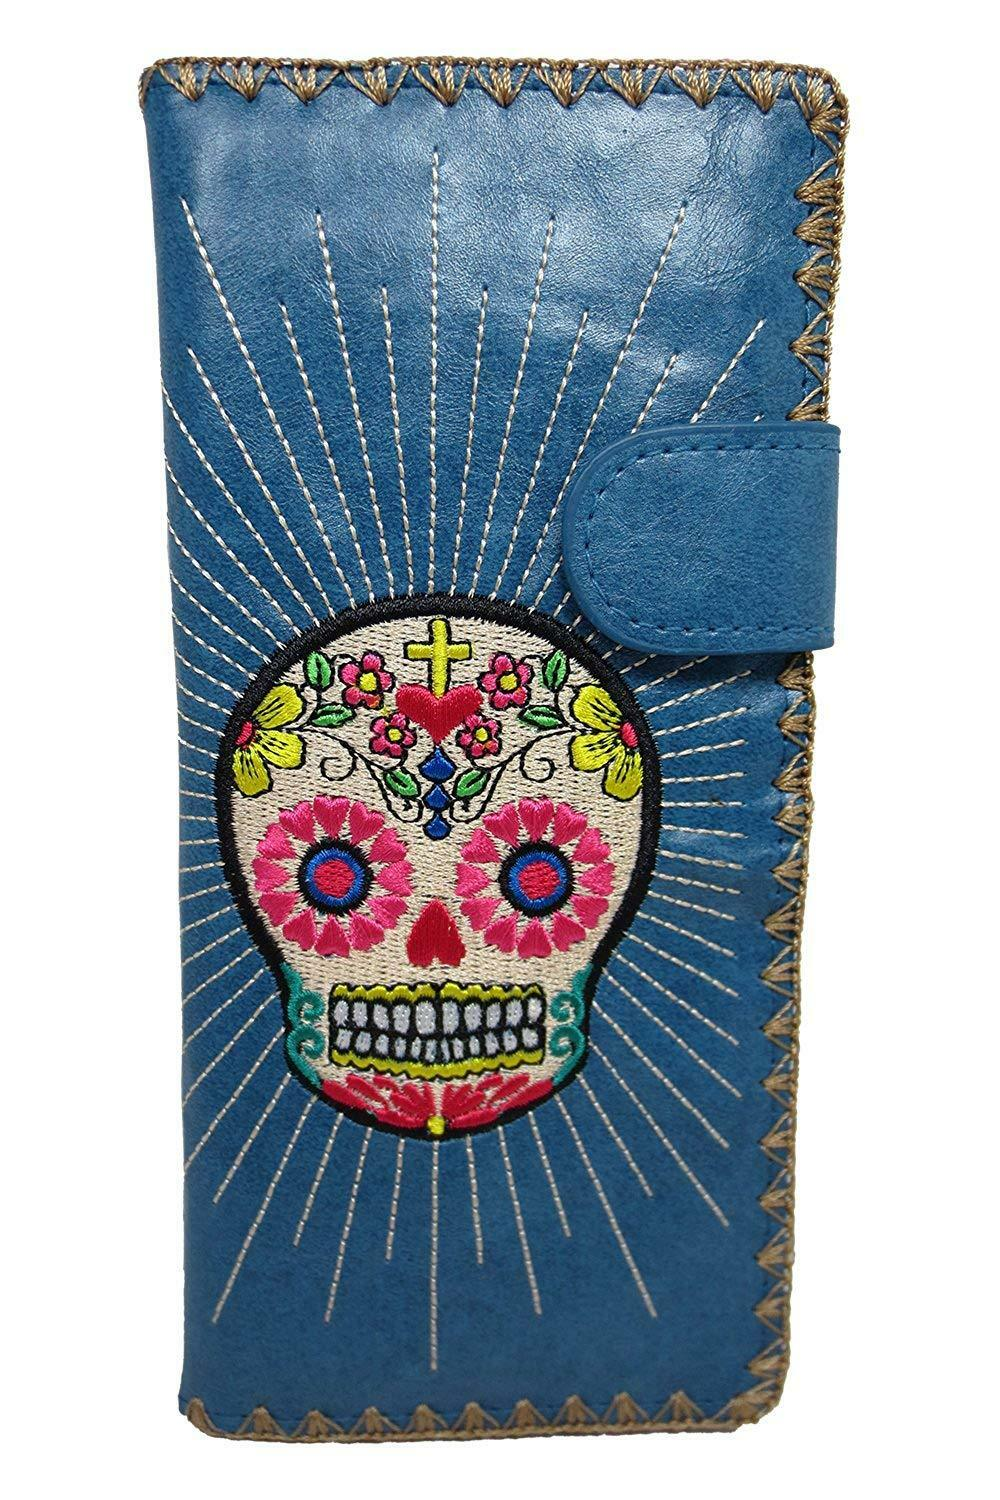 Lavishy Mexican Sugar Skull Day of the Dead Embroidered Large Wallet